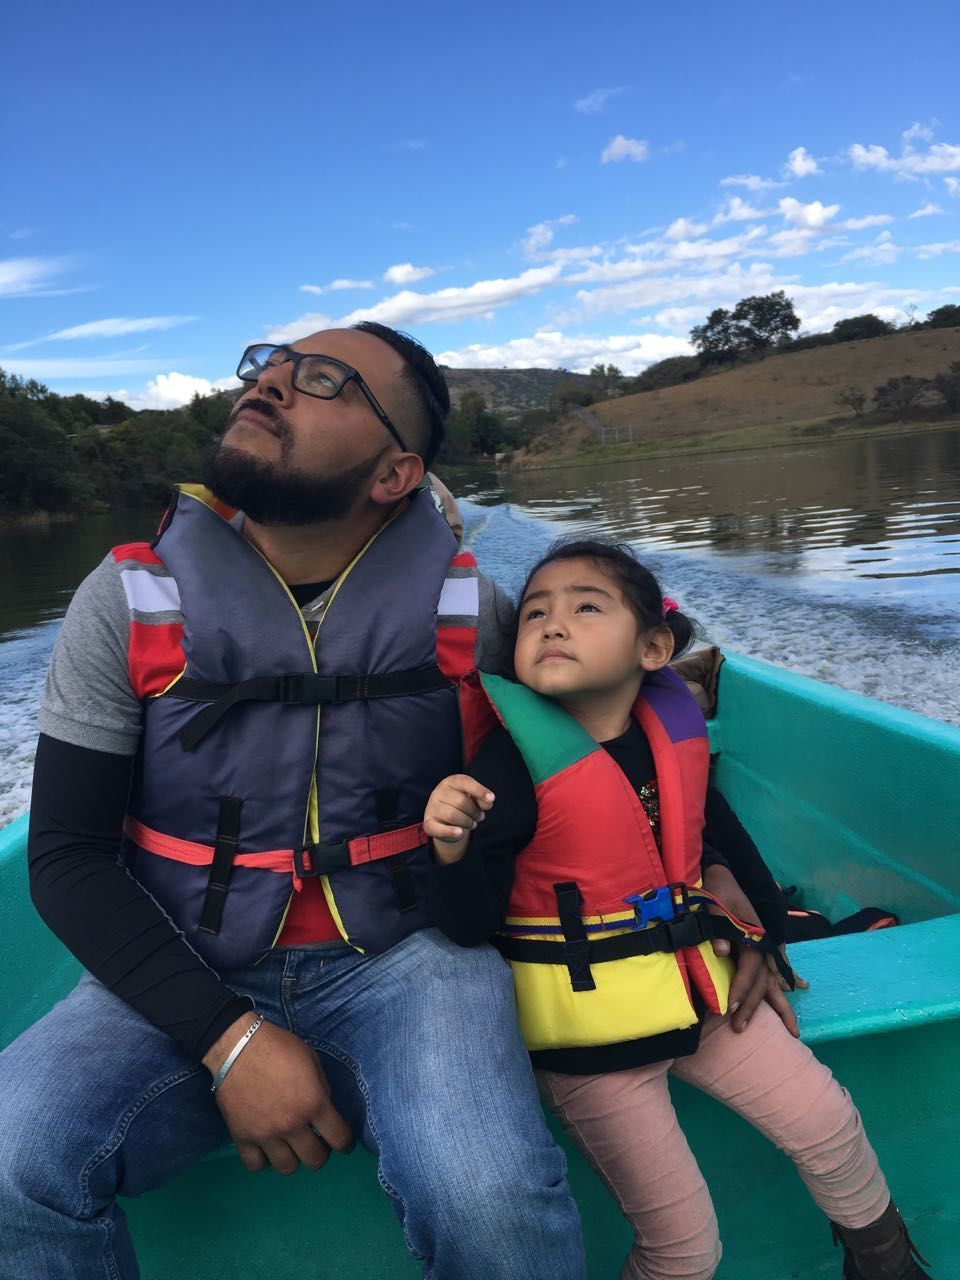 Father And Daughter Looking Up While Sitting On Boat In Lake Against Sky